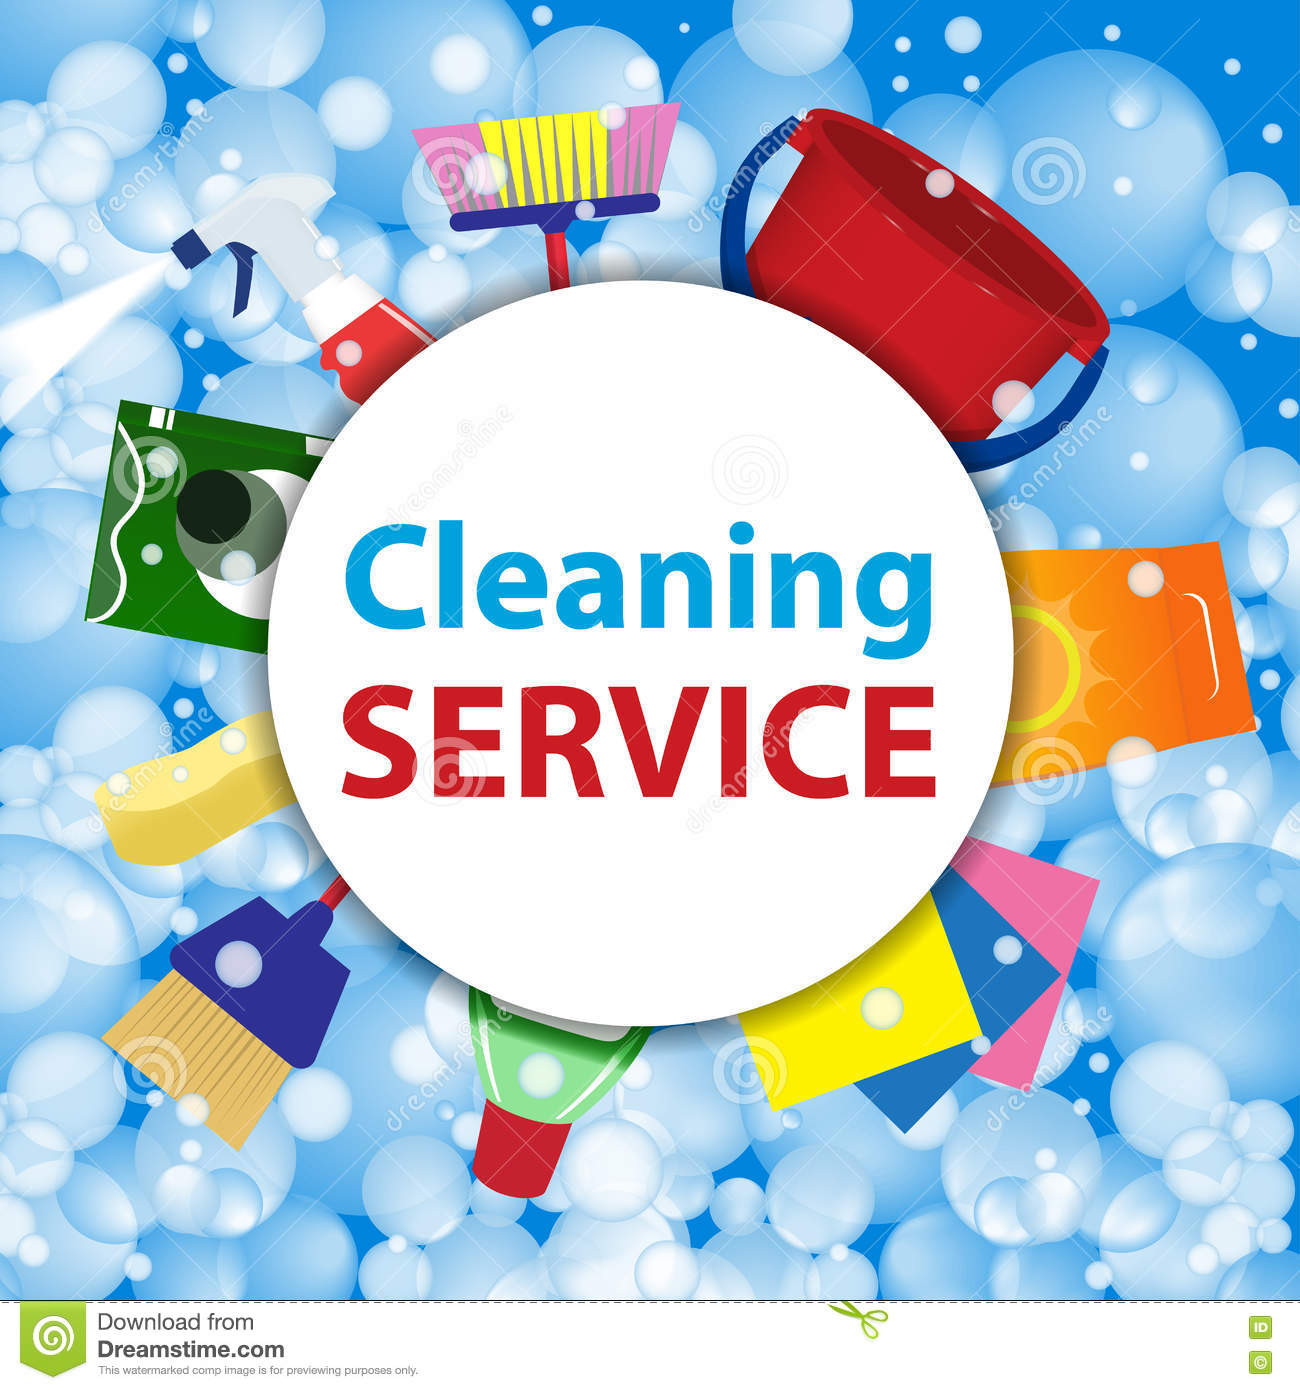 cleaning services flyer template royalty stock image image cleaning service poster template or background for house cleani stock image